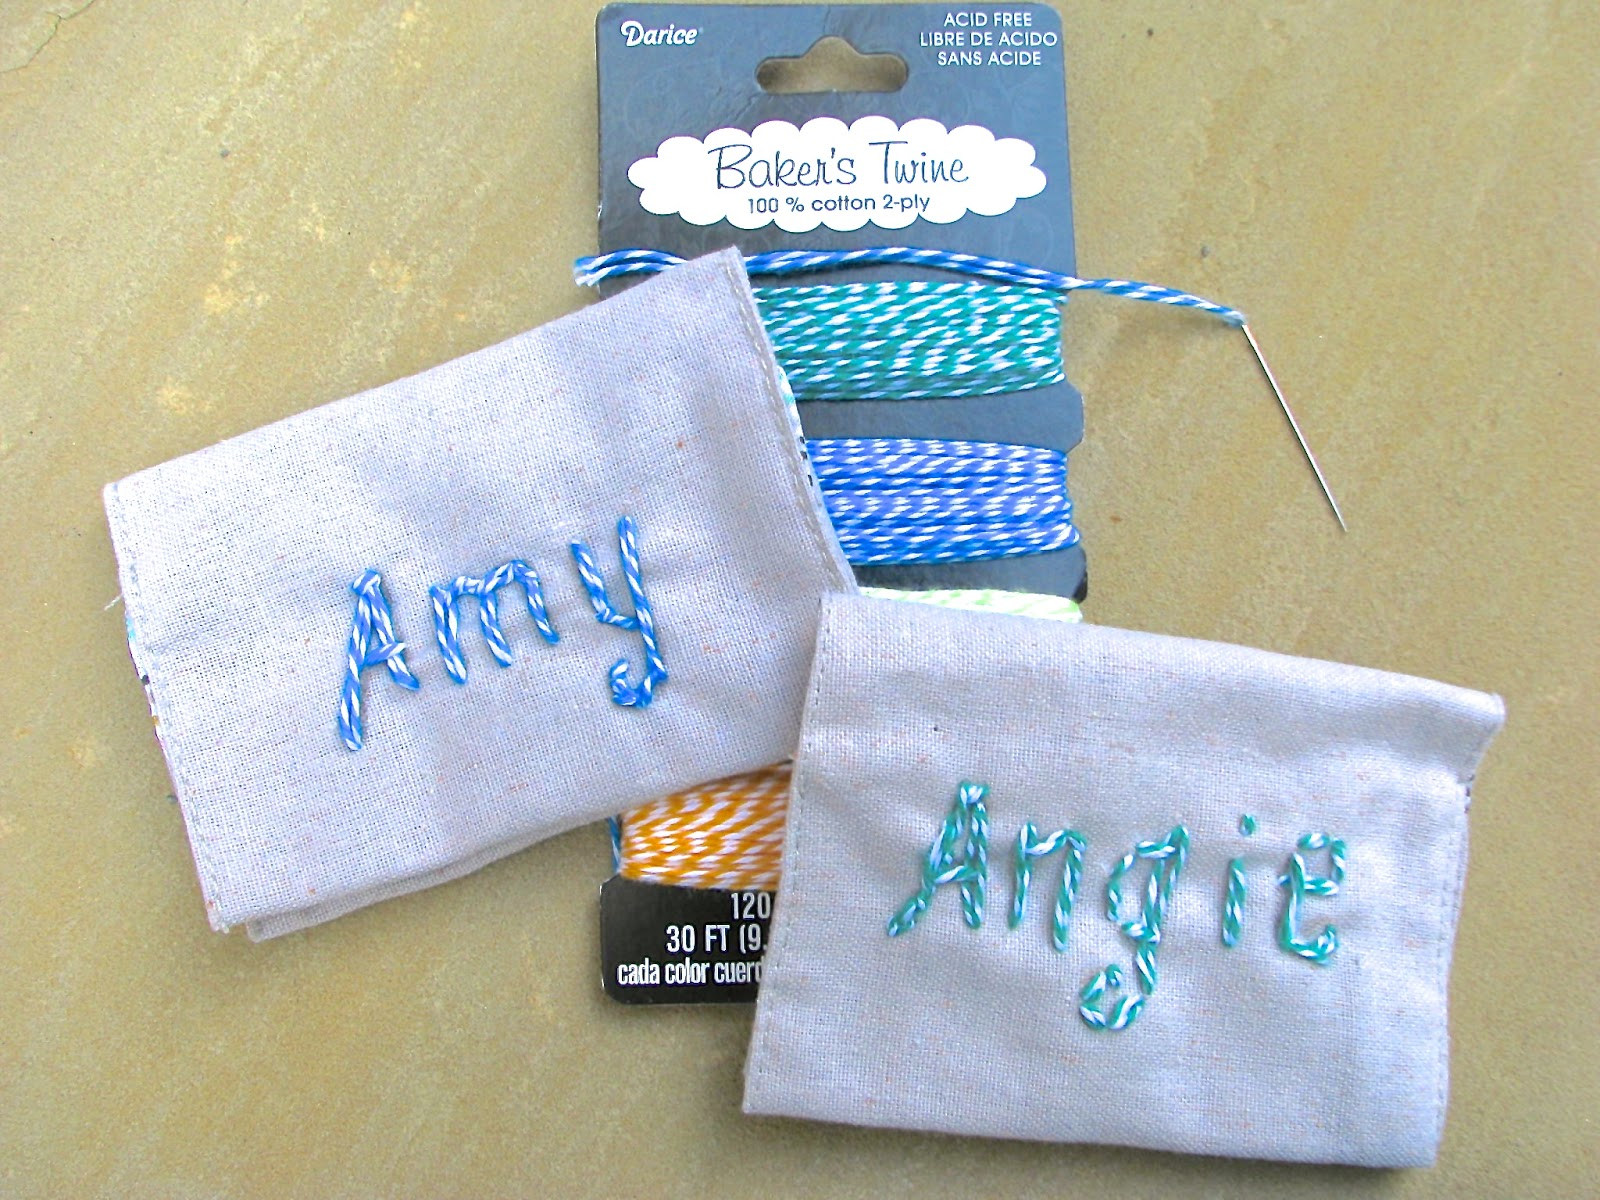 Card holder embroidered with baker's twine